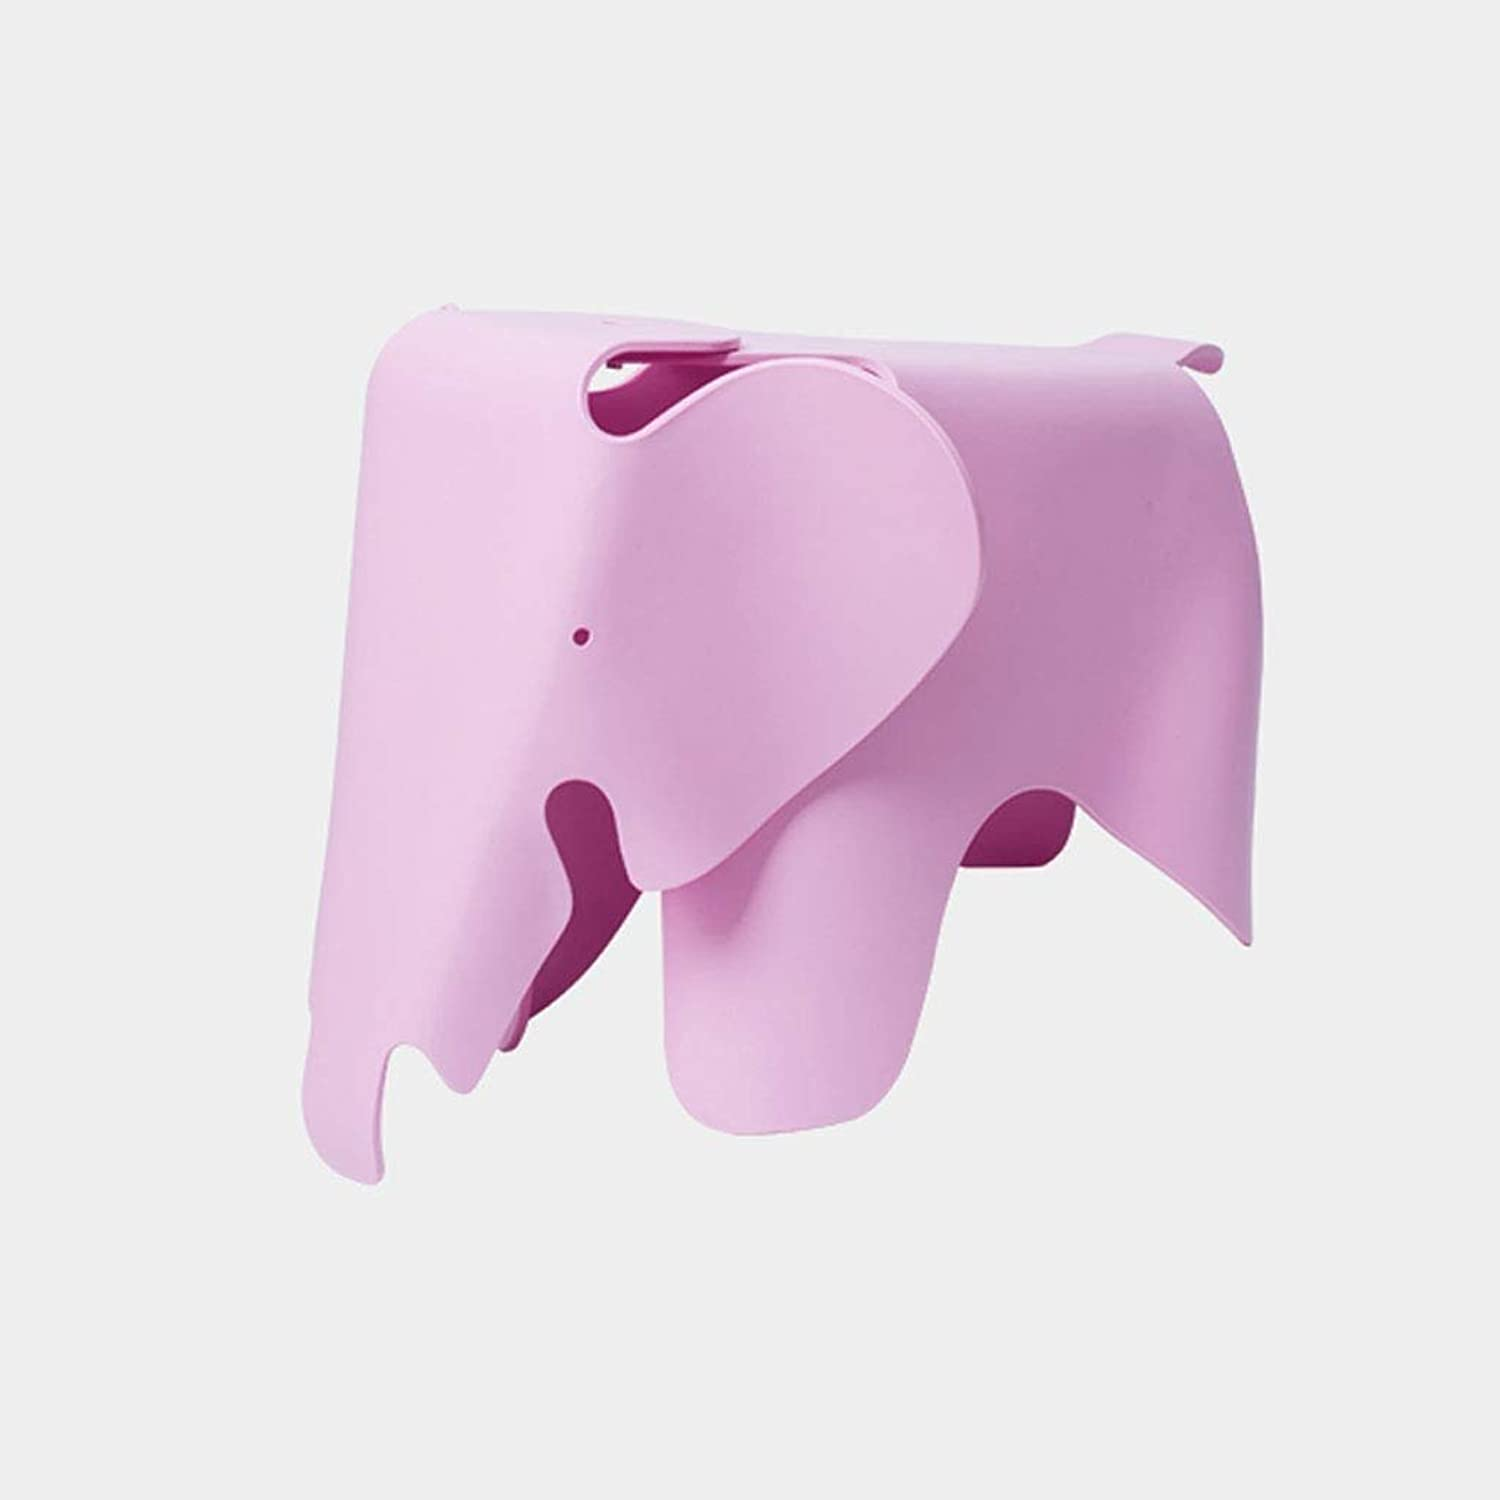 Chair Environmental Predection Plastic Stool Toy Decoration GMING (color   Pink)